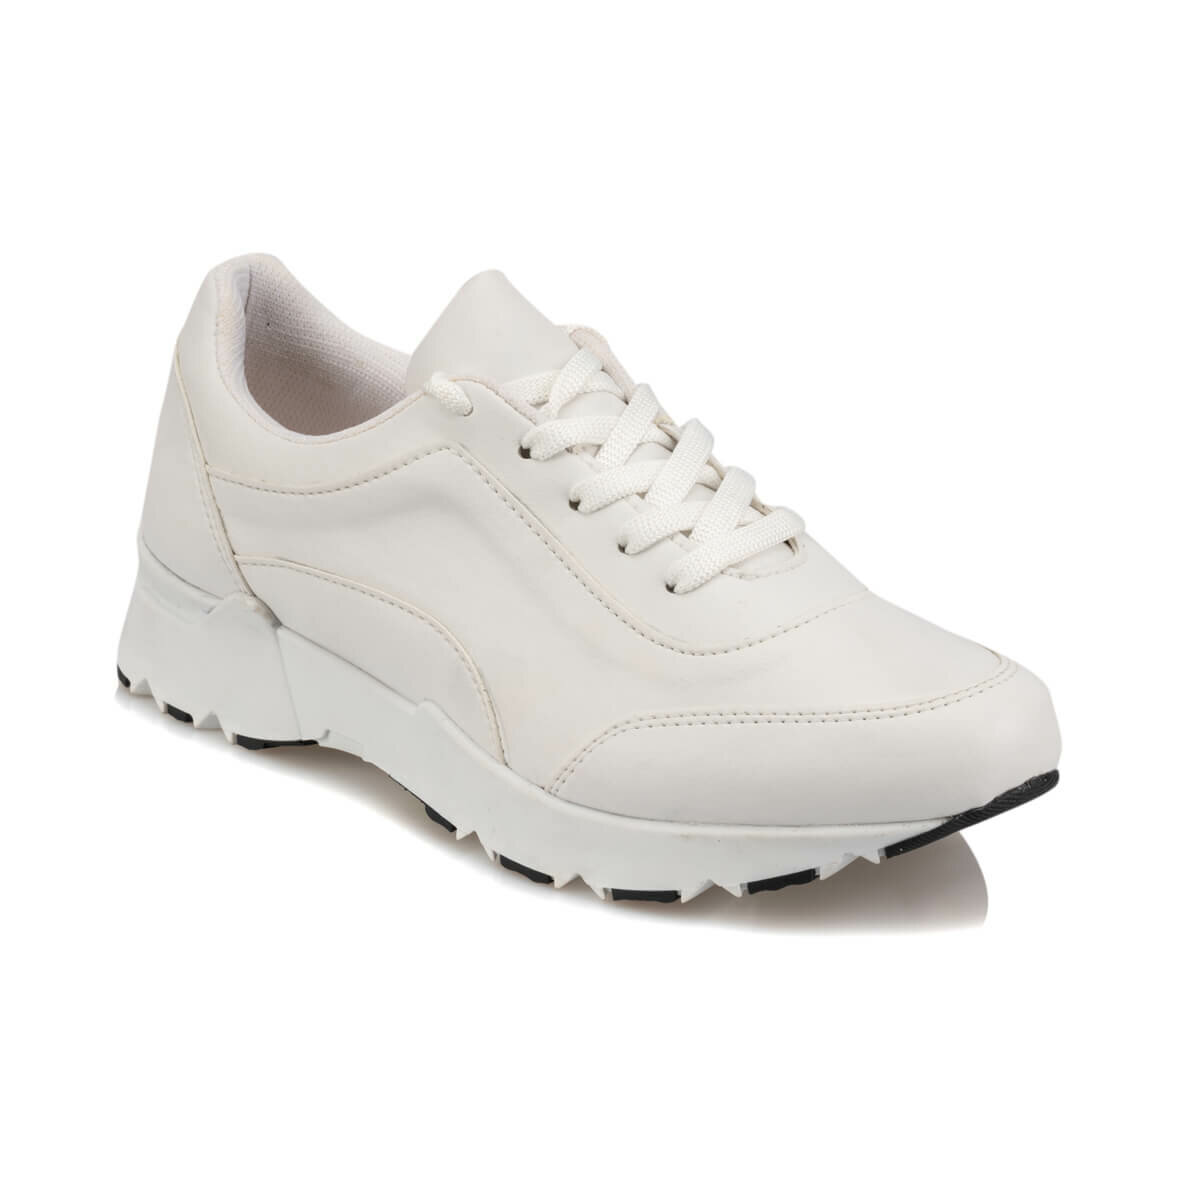 FLO 92.314715.Z White Women 'S Shoes Polaris